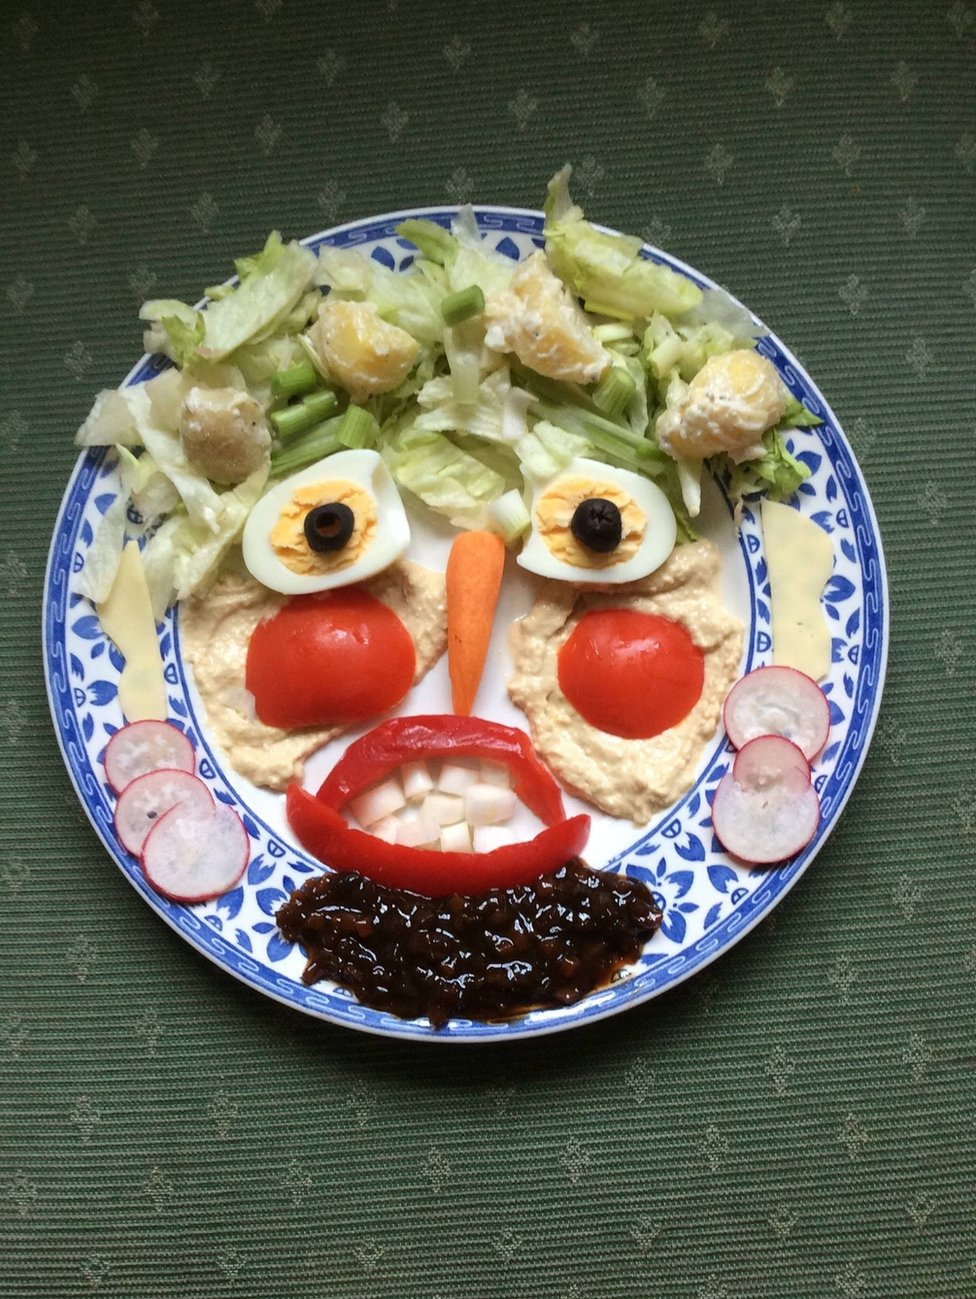 A salad has been put together to look like an angry face